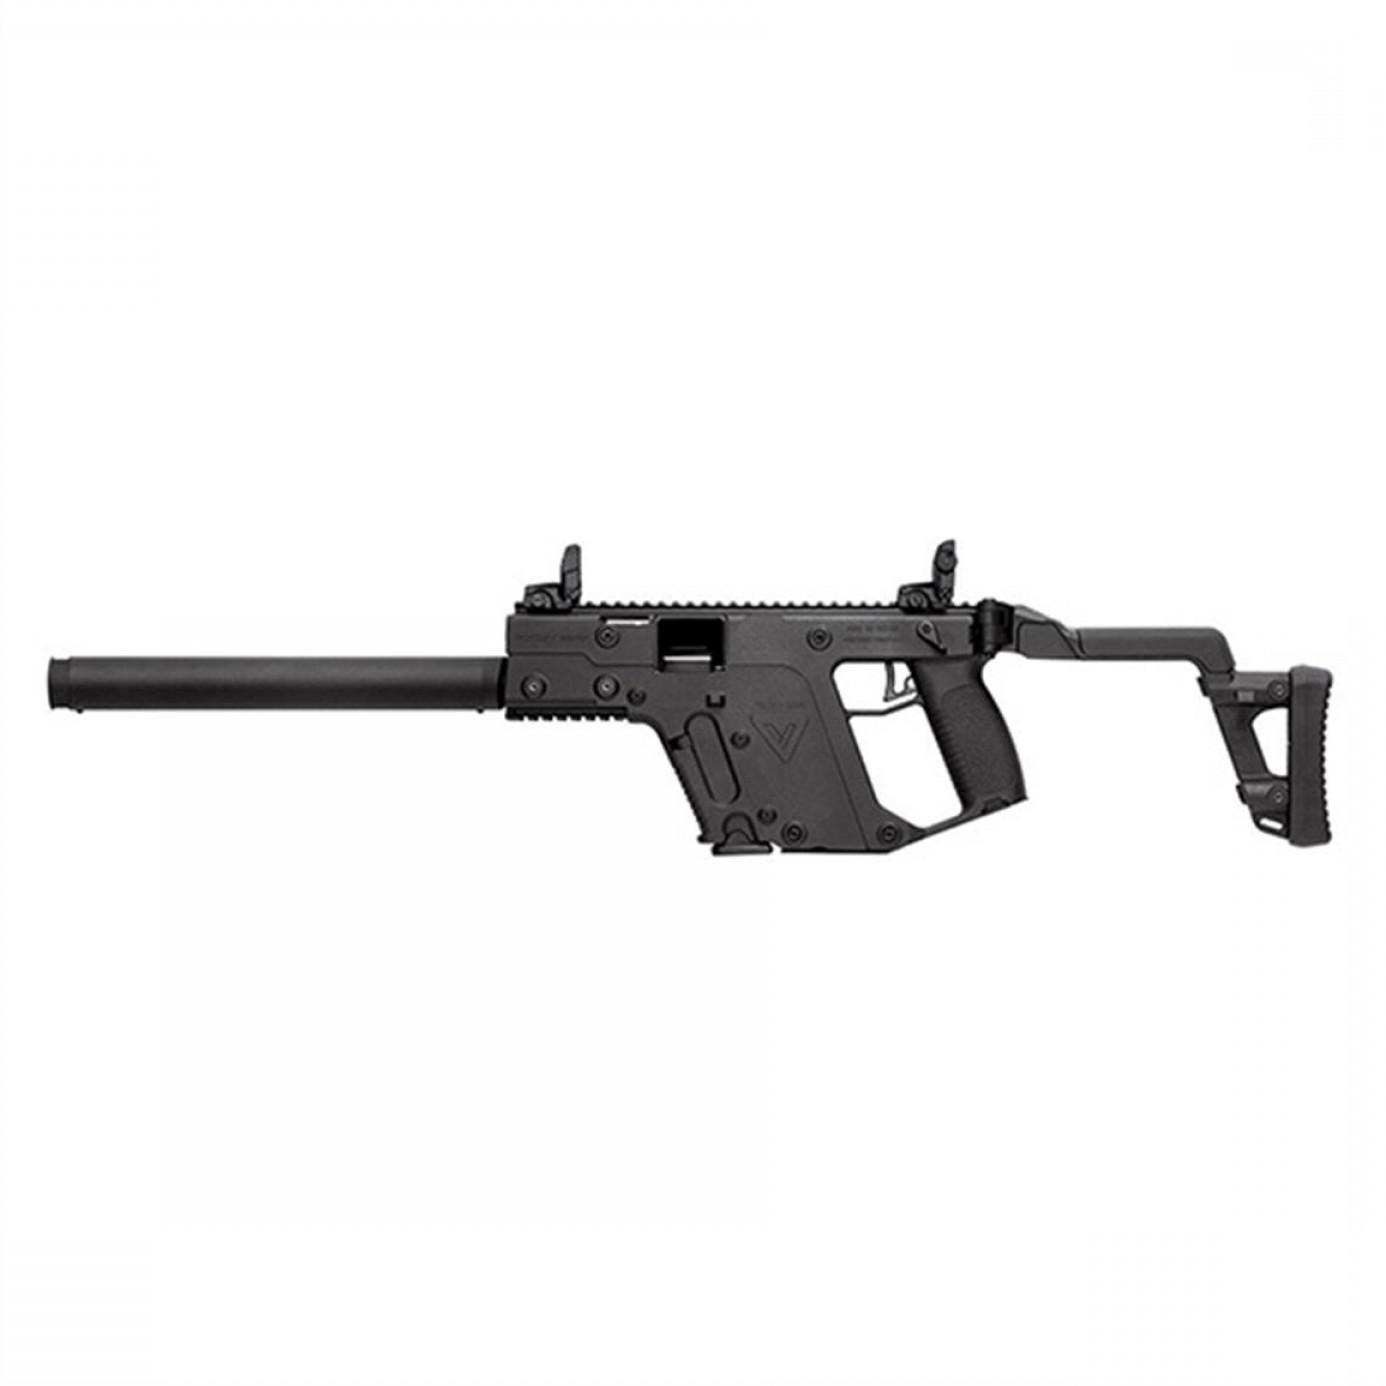 Kriss Vector Alpine: Kriss Vector Gen Ii Crb Alpine Mm Barrel Rounds